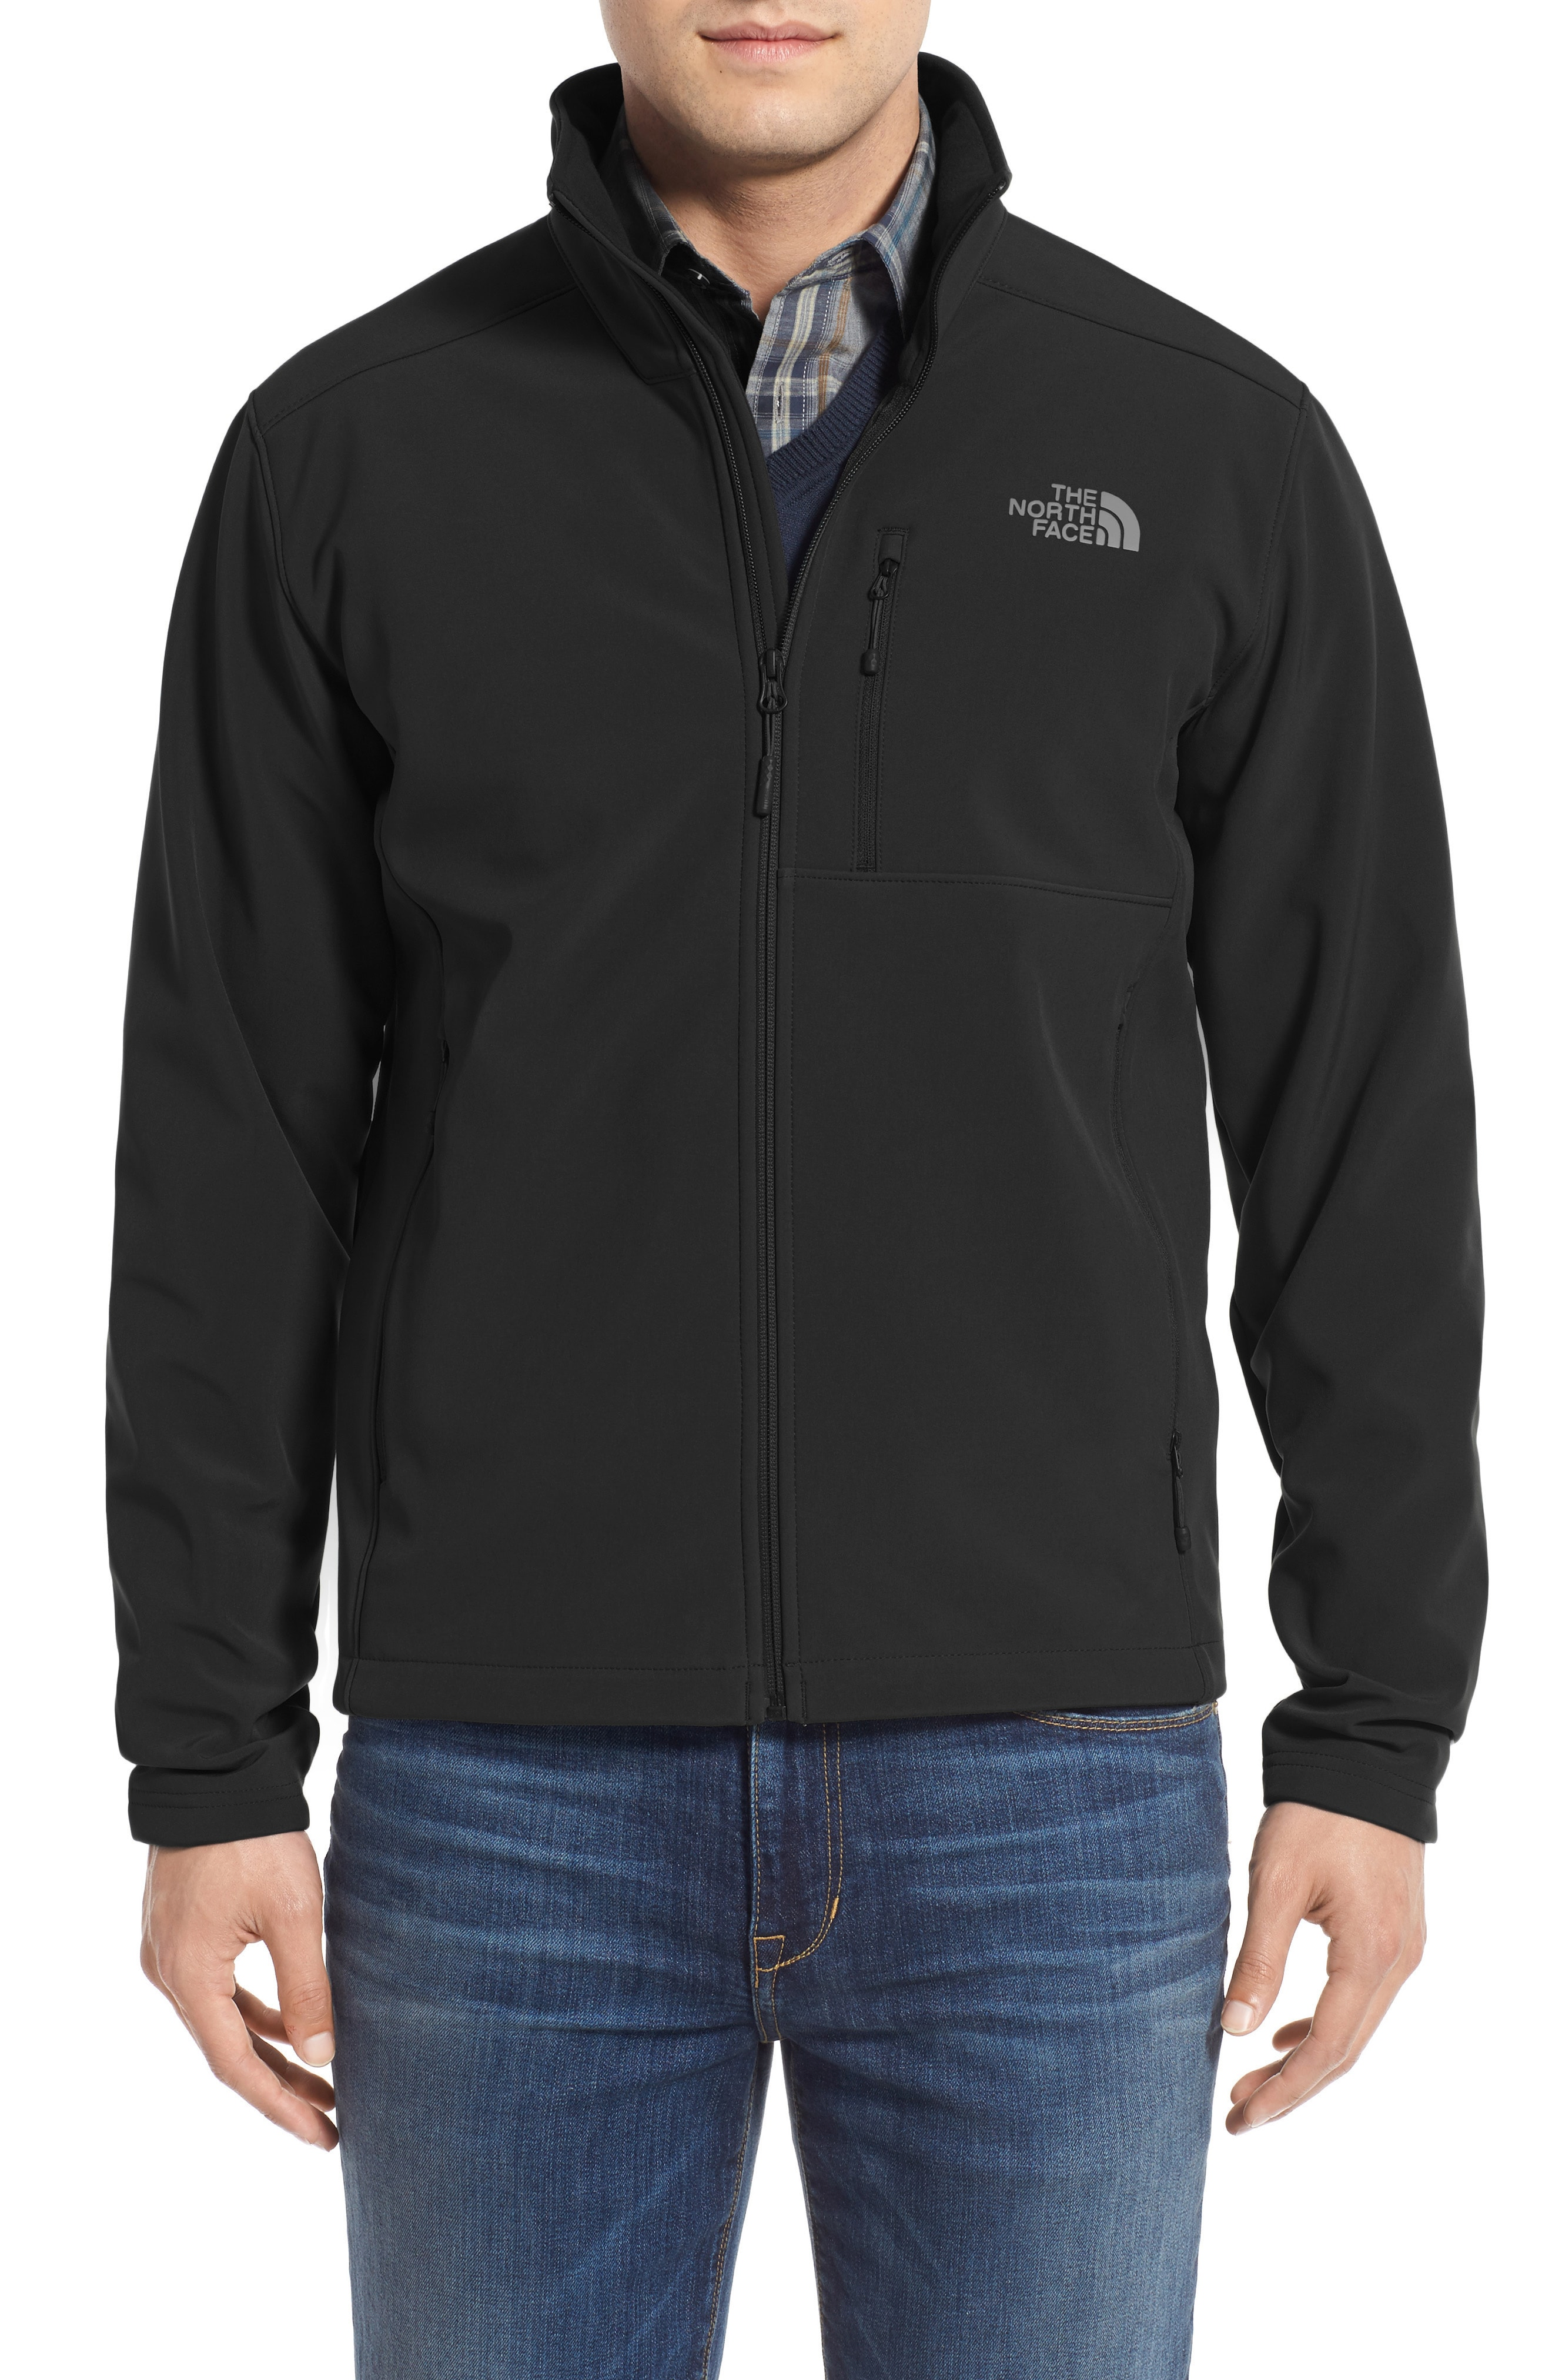 The North Face Apex Bionic 2 Water Repllent Jacket (Tall)